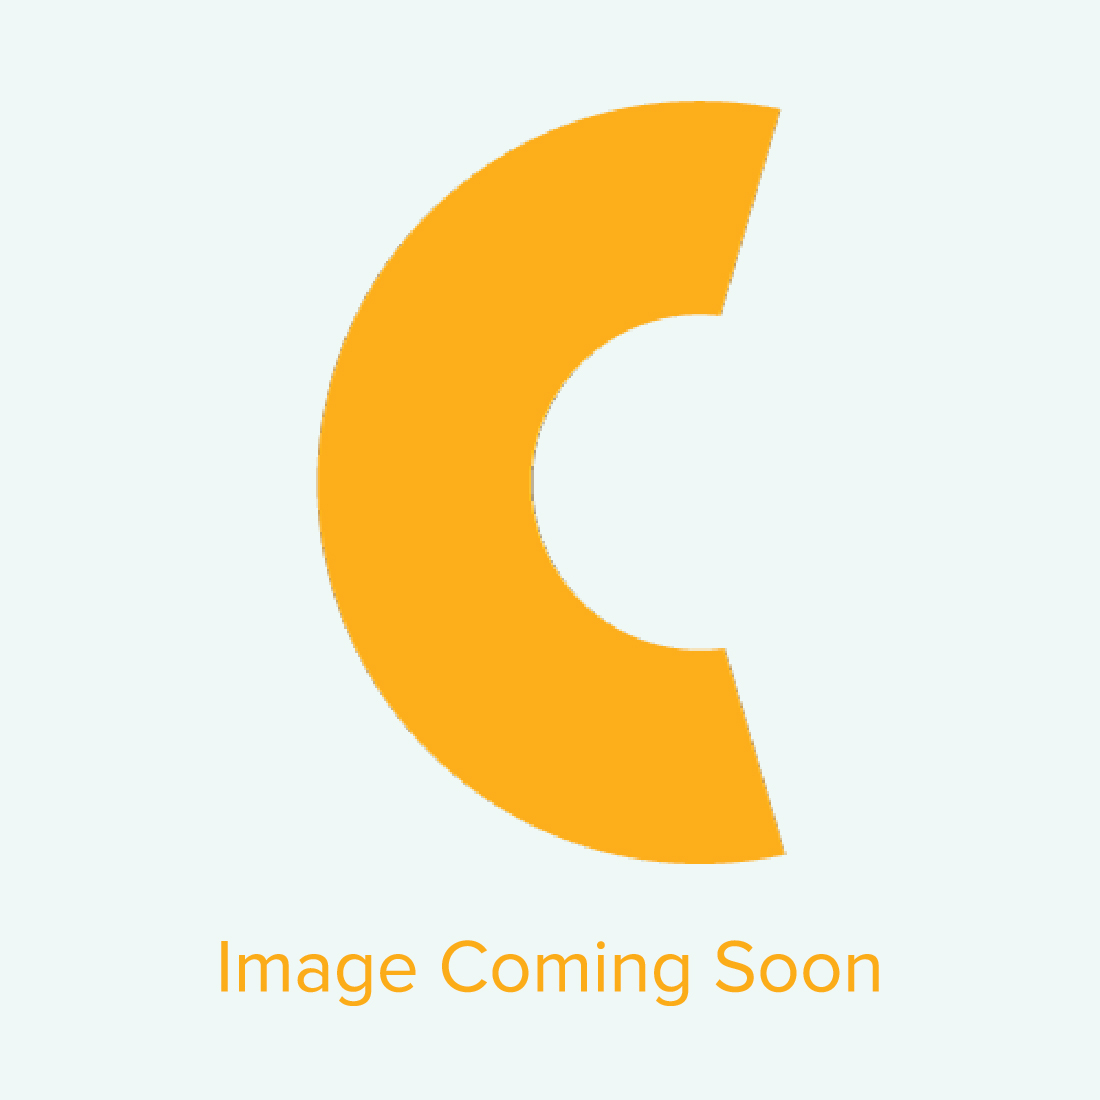 OKI Data Pro8432WT Replacement Image Drums